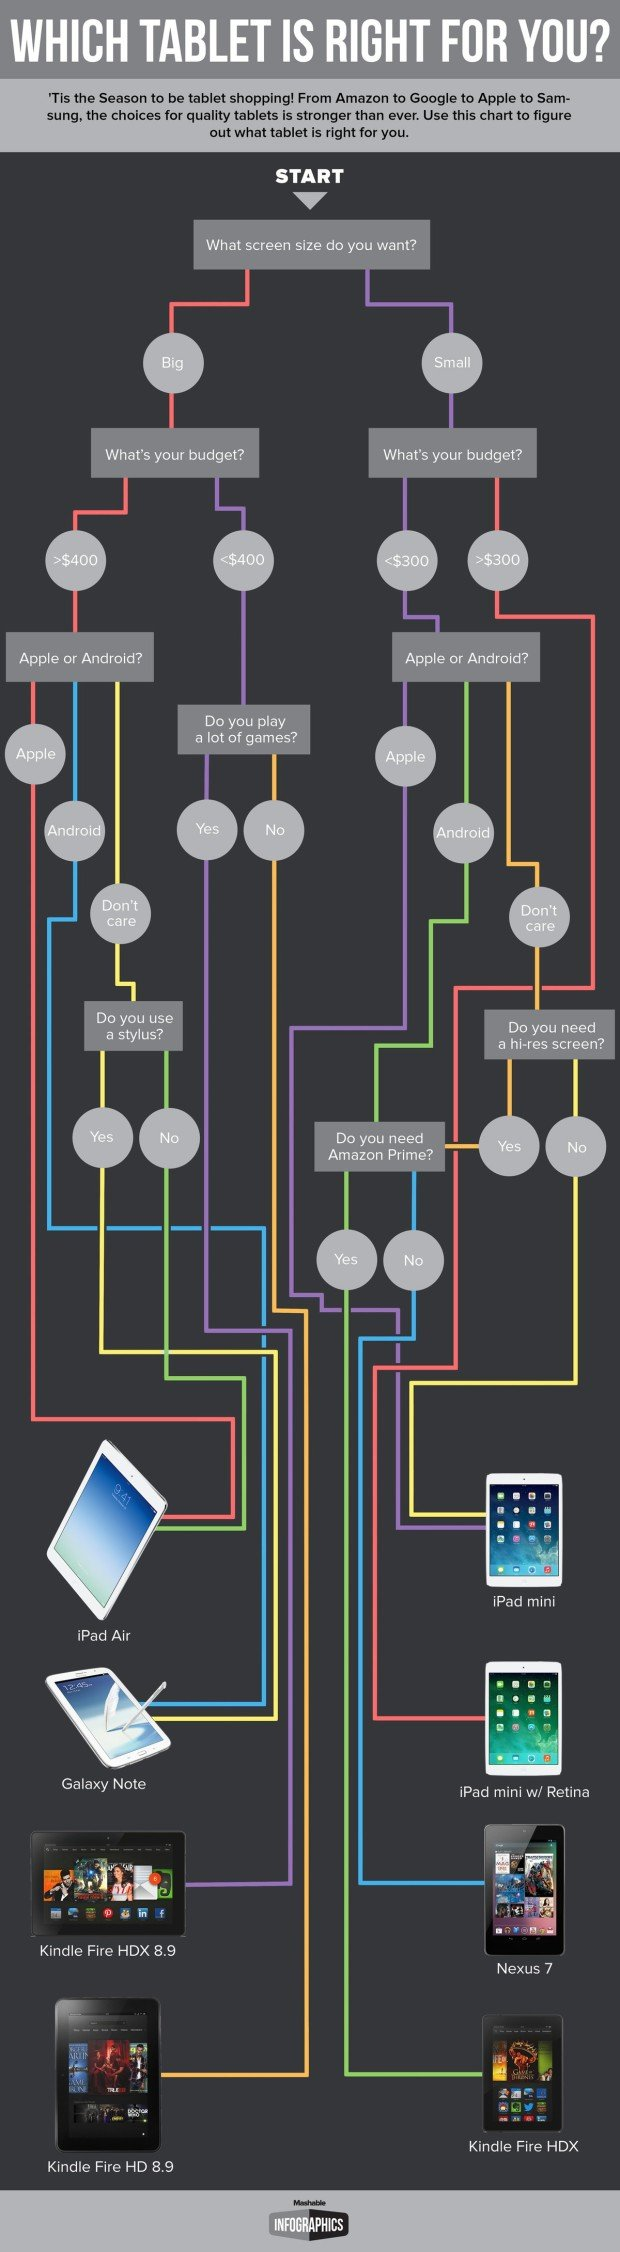 What-Tablet-Are-You-Flowchart